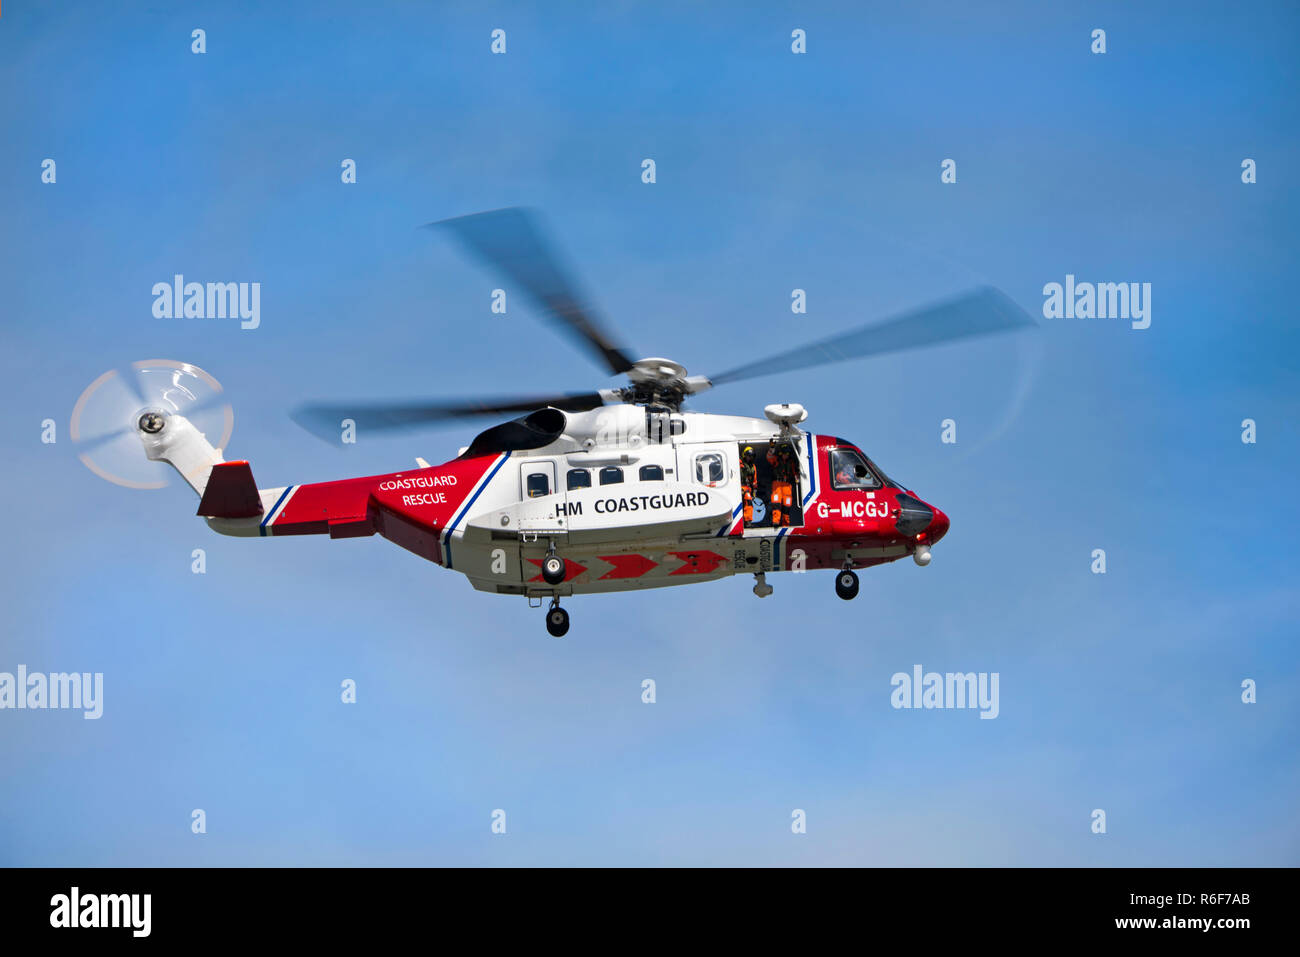 Horizontal close up of a coastguard helicopter in flight. Stock Photo